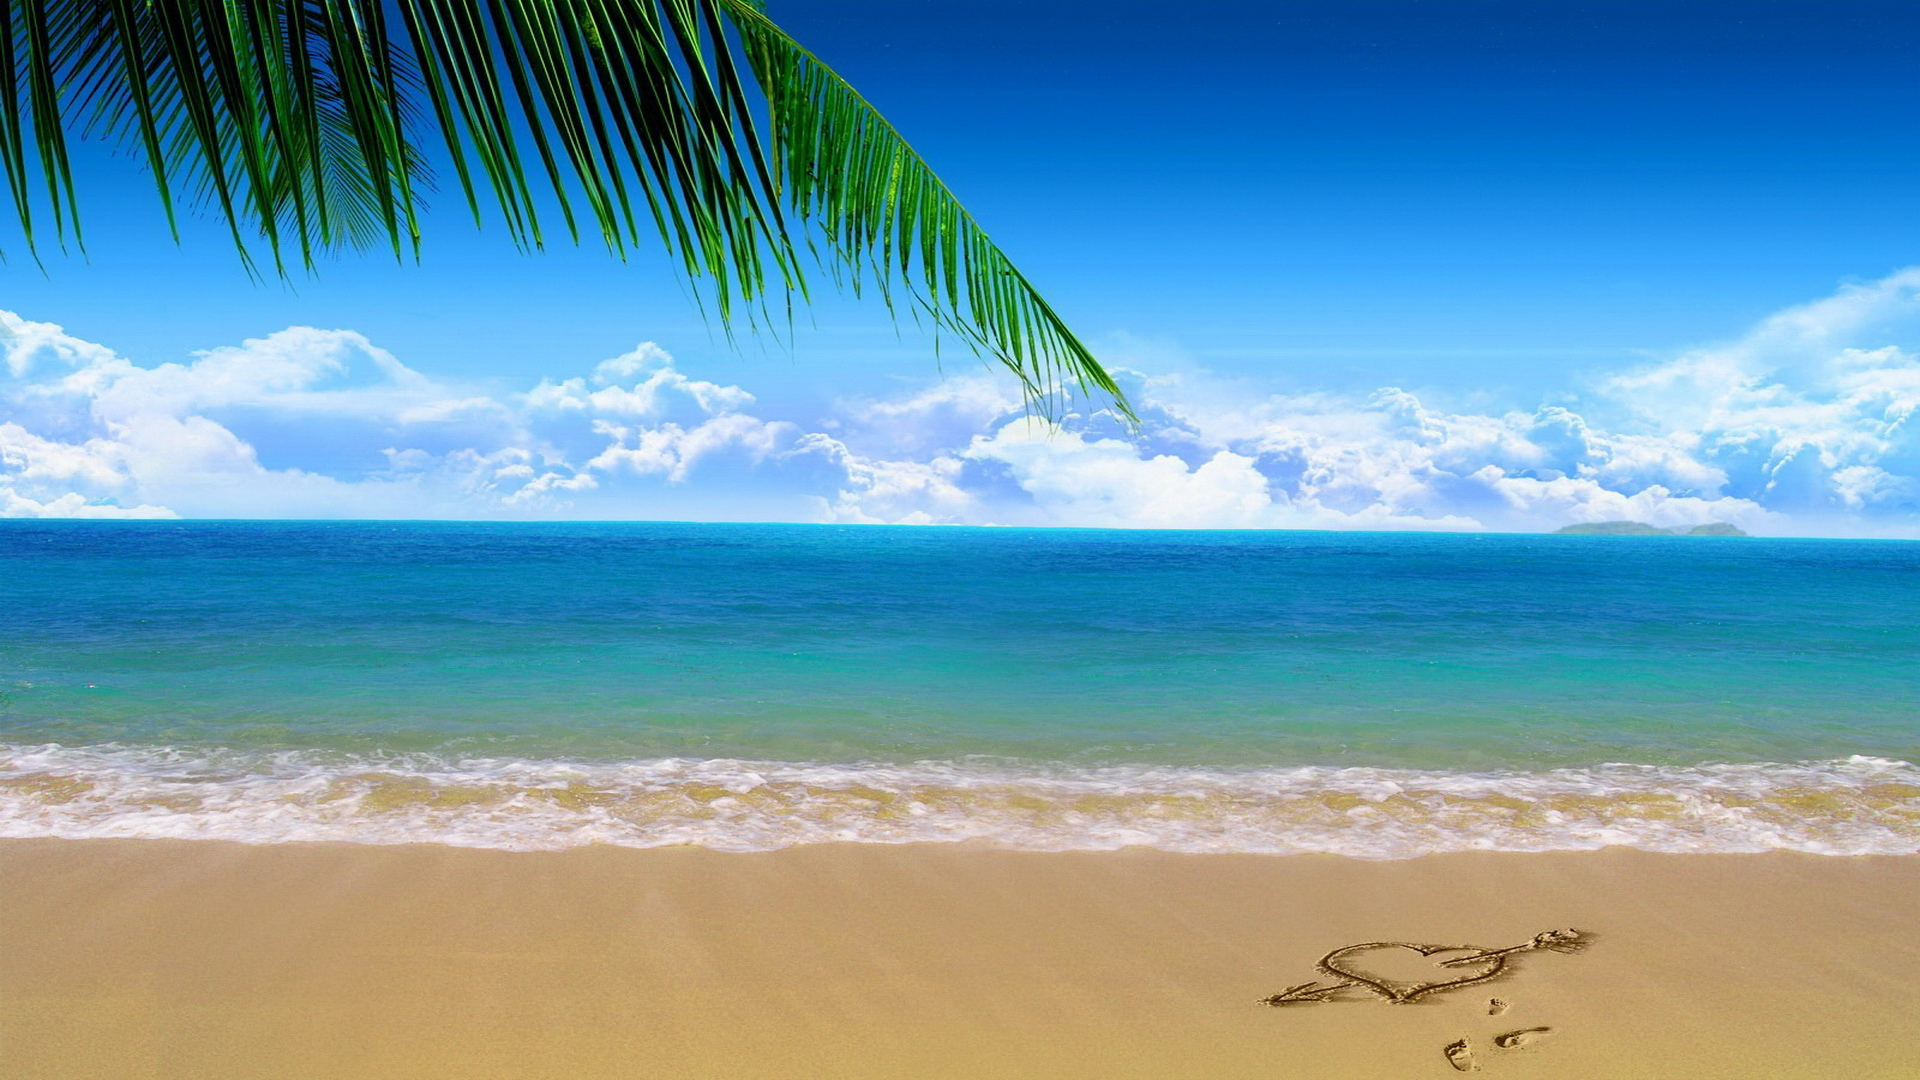 Free Beach Cliparts Backgrounds, Download Free Clip Art.